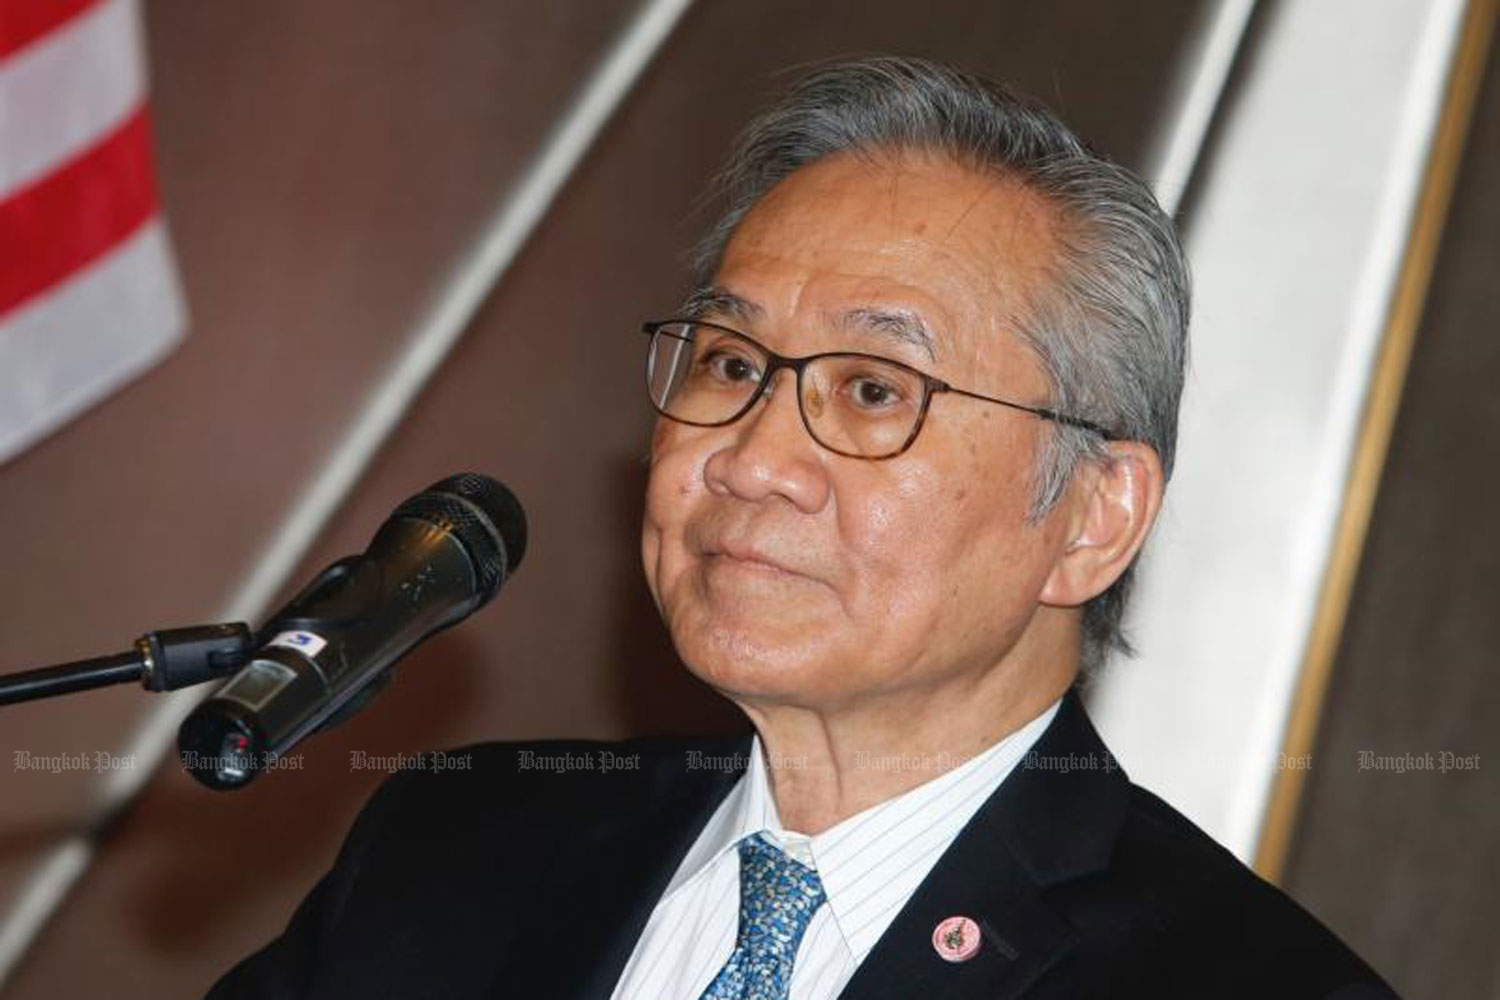 Foreign Minister Don Pramudwinai has dismissed an editorial piece run by the Washington Post.